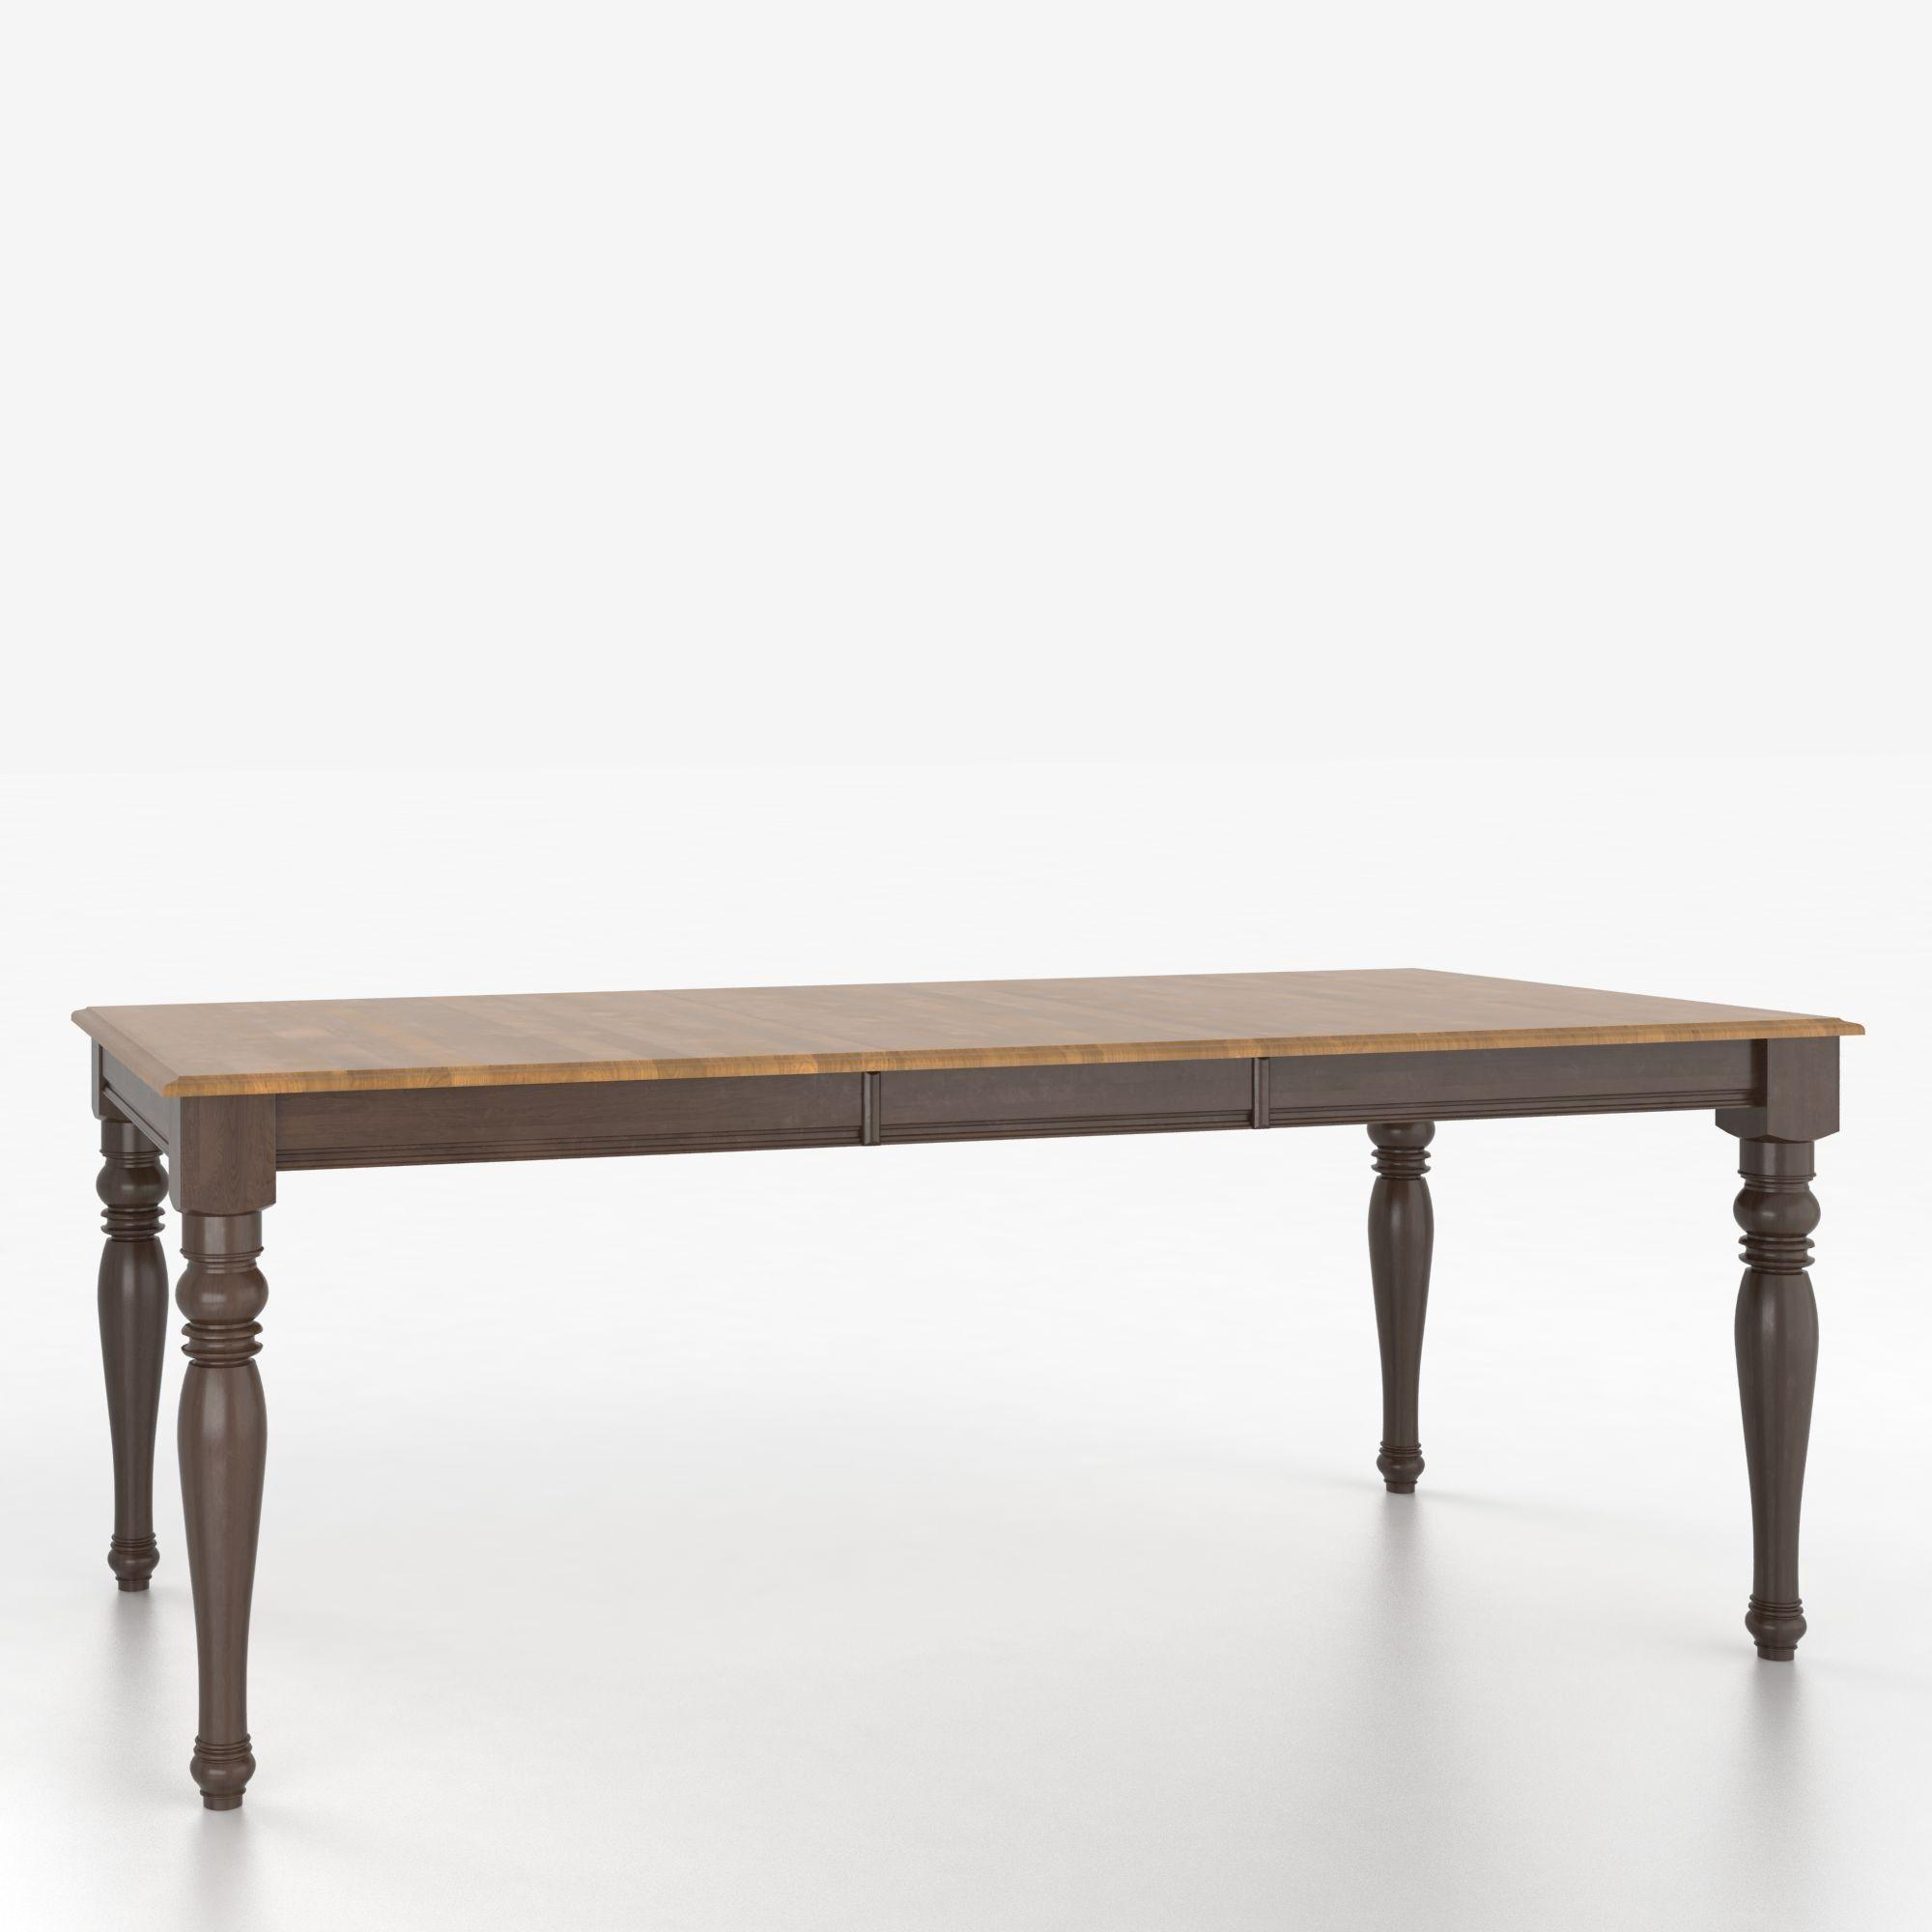 Canadel custom dining tables tre038680129mtda1 for John v schultz dining room table